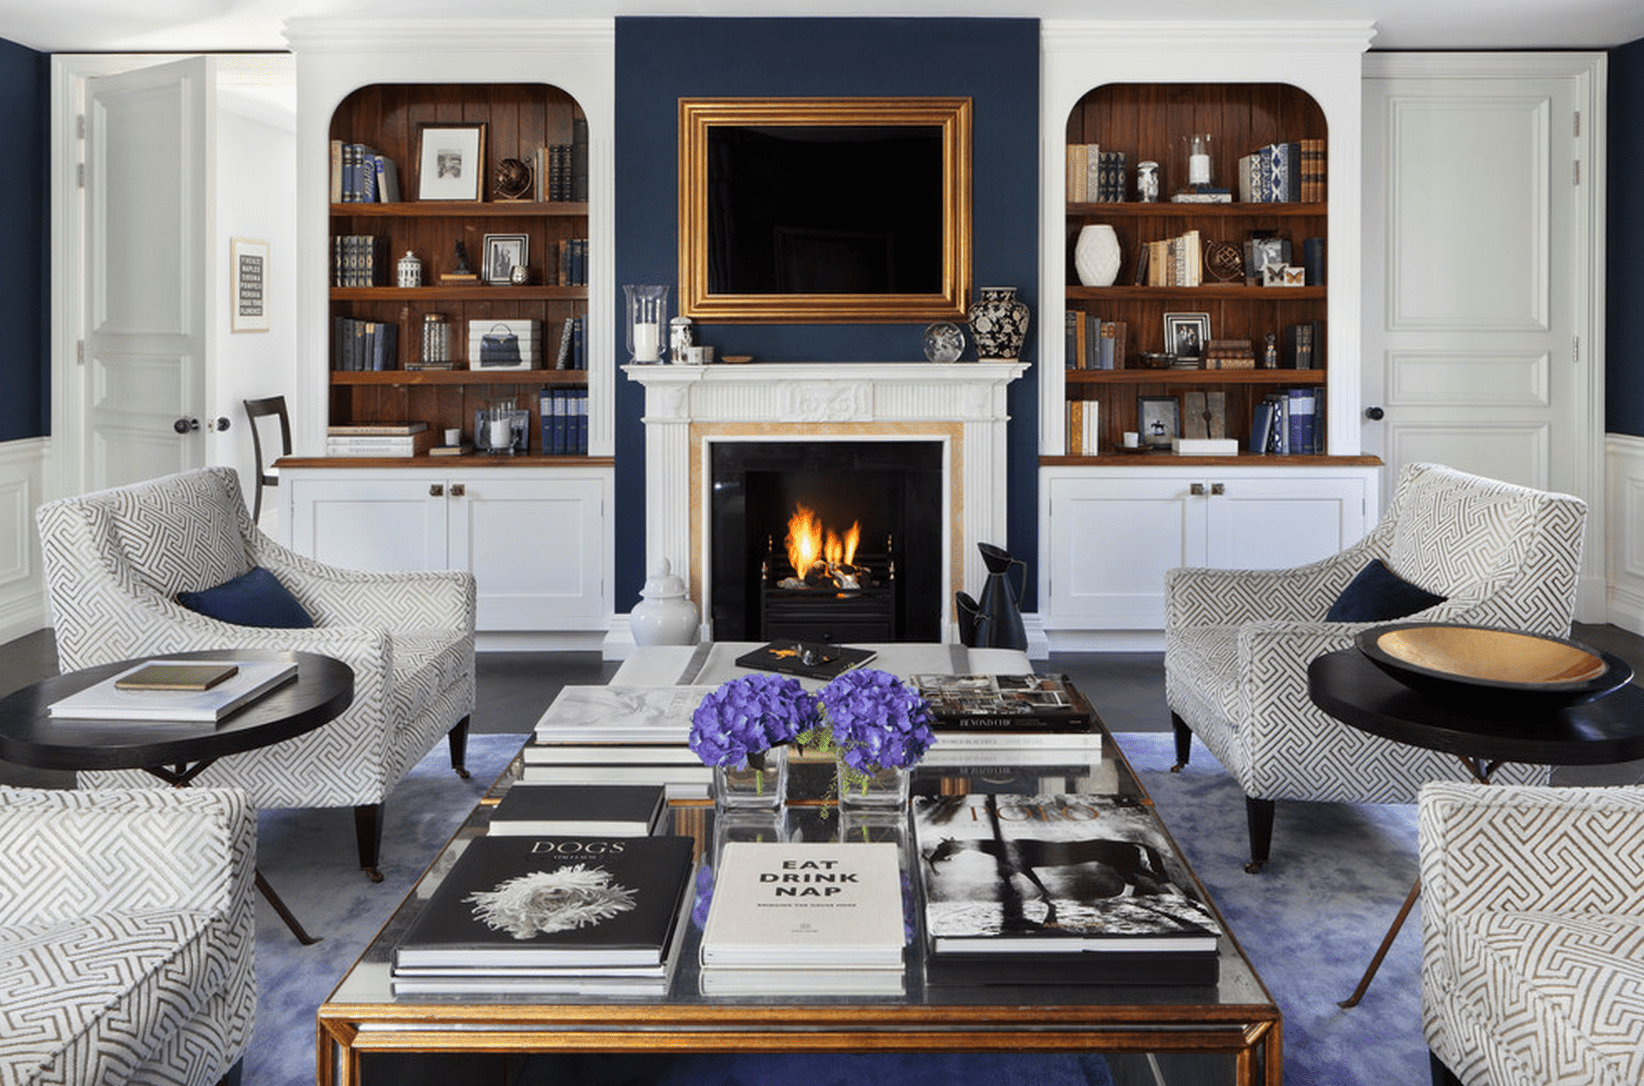 20+ Beautiful Living Rooms With Fireplaces on Small Space Small Living Room With Fireplace  id=37792